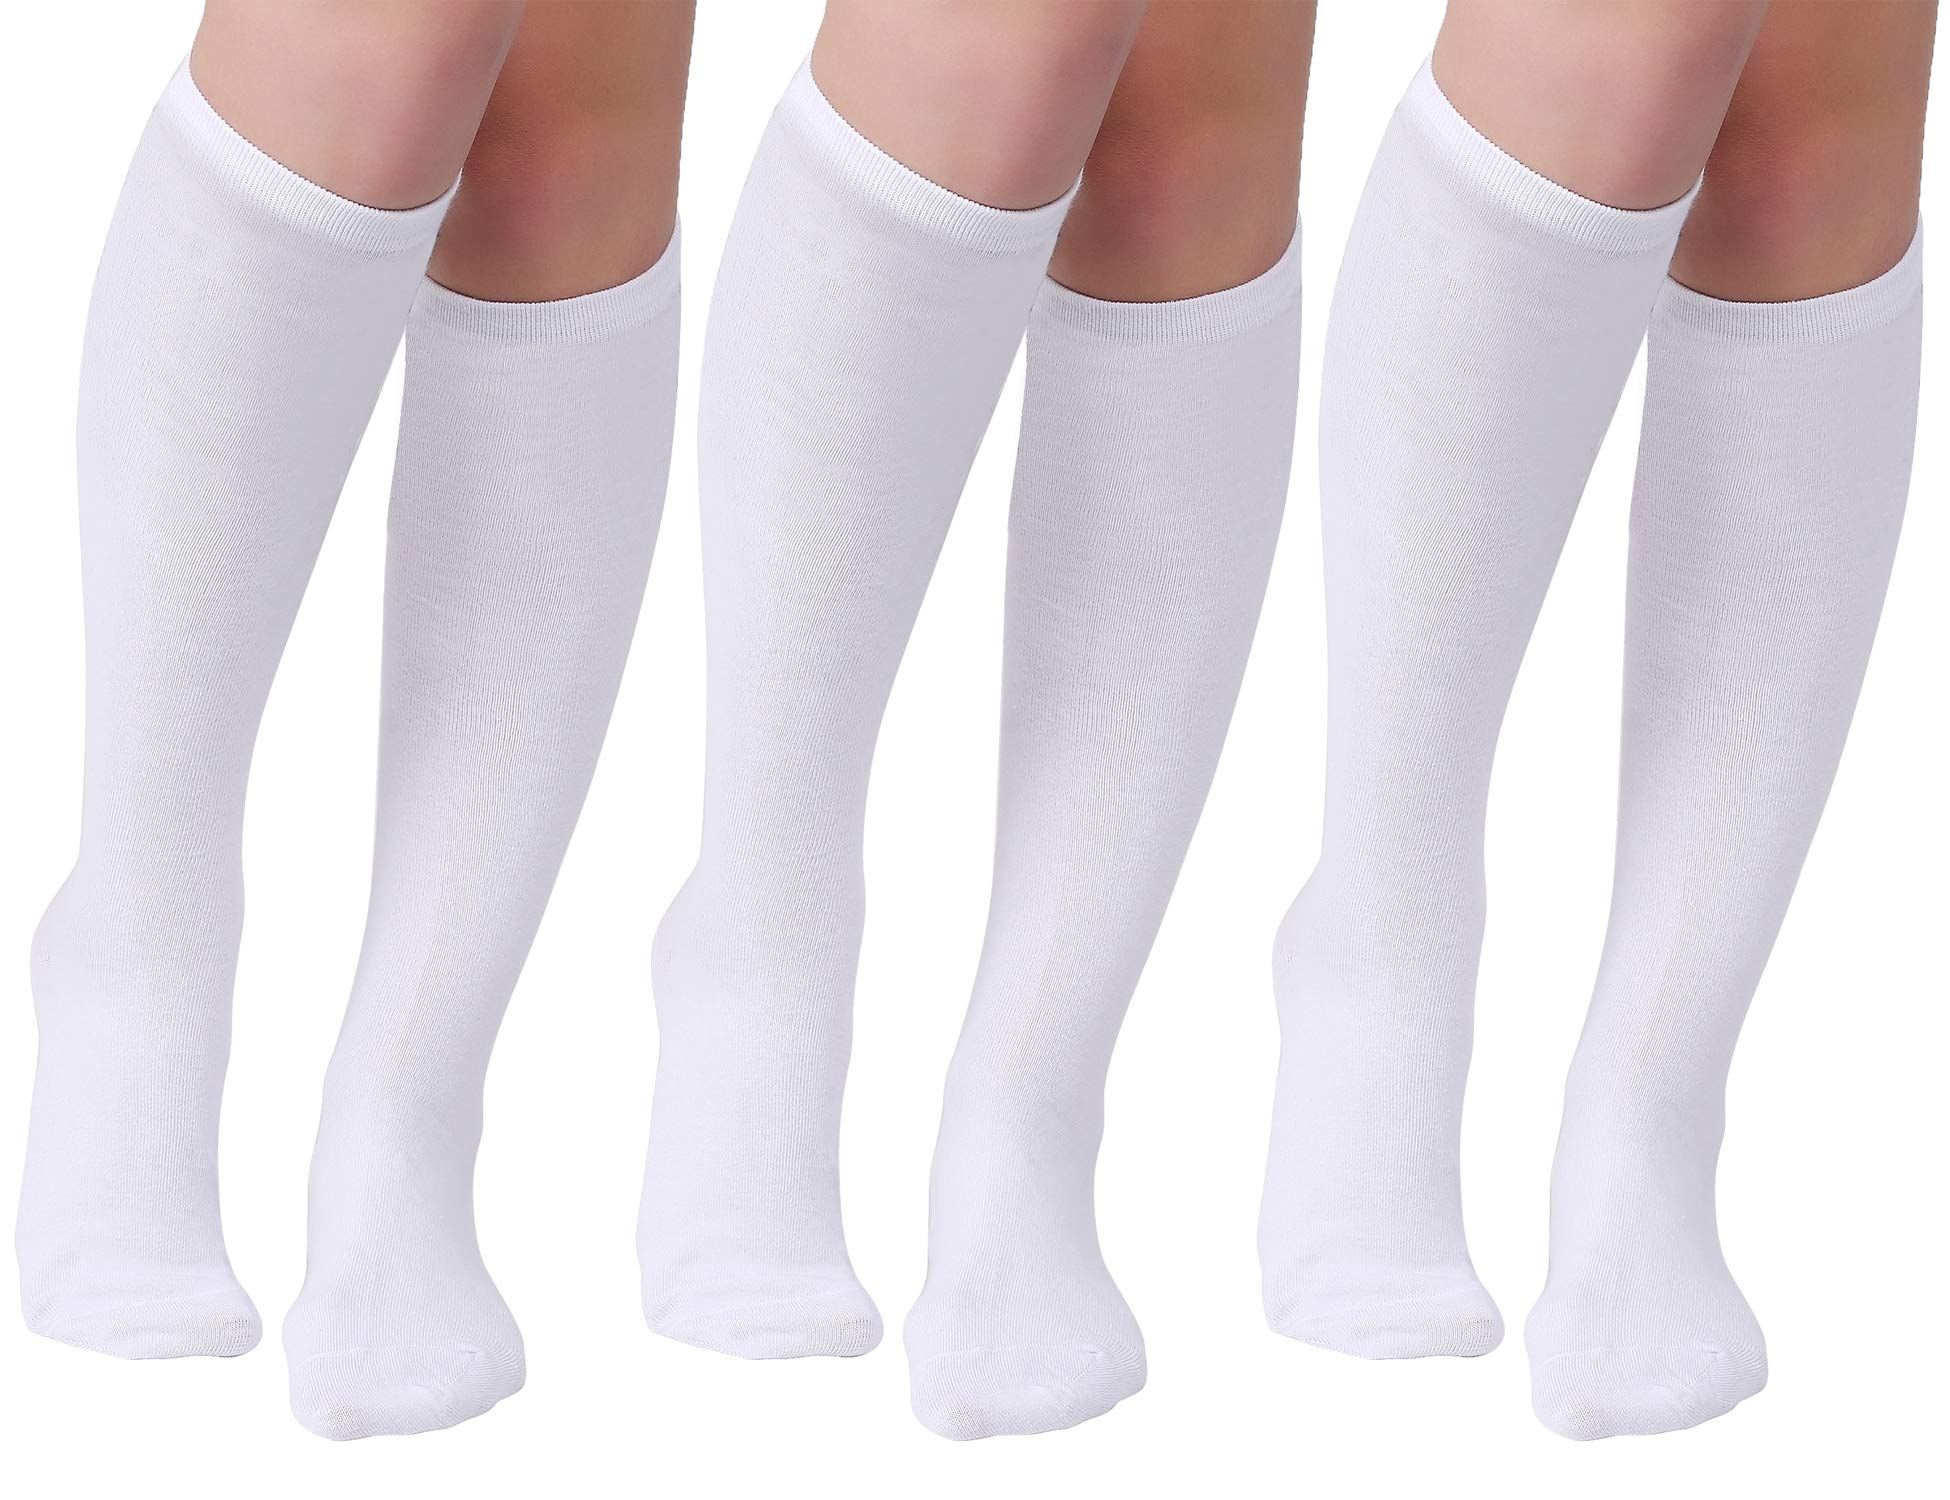 Joulli Women's Casual Stripe Knee High Socks, White, One Size